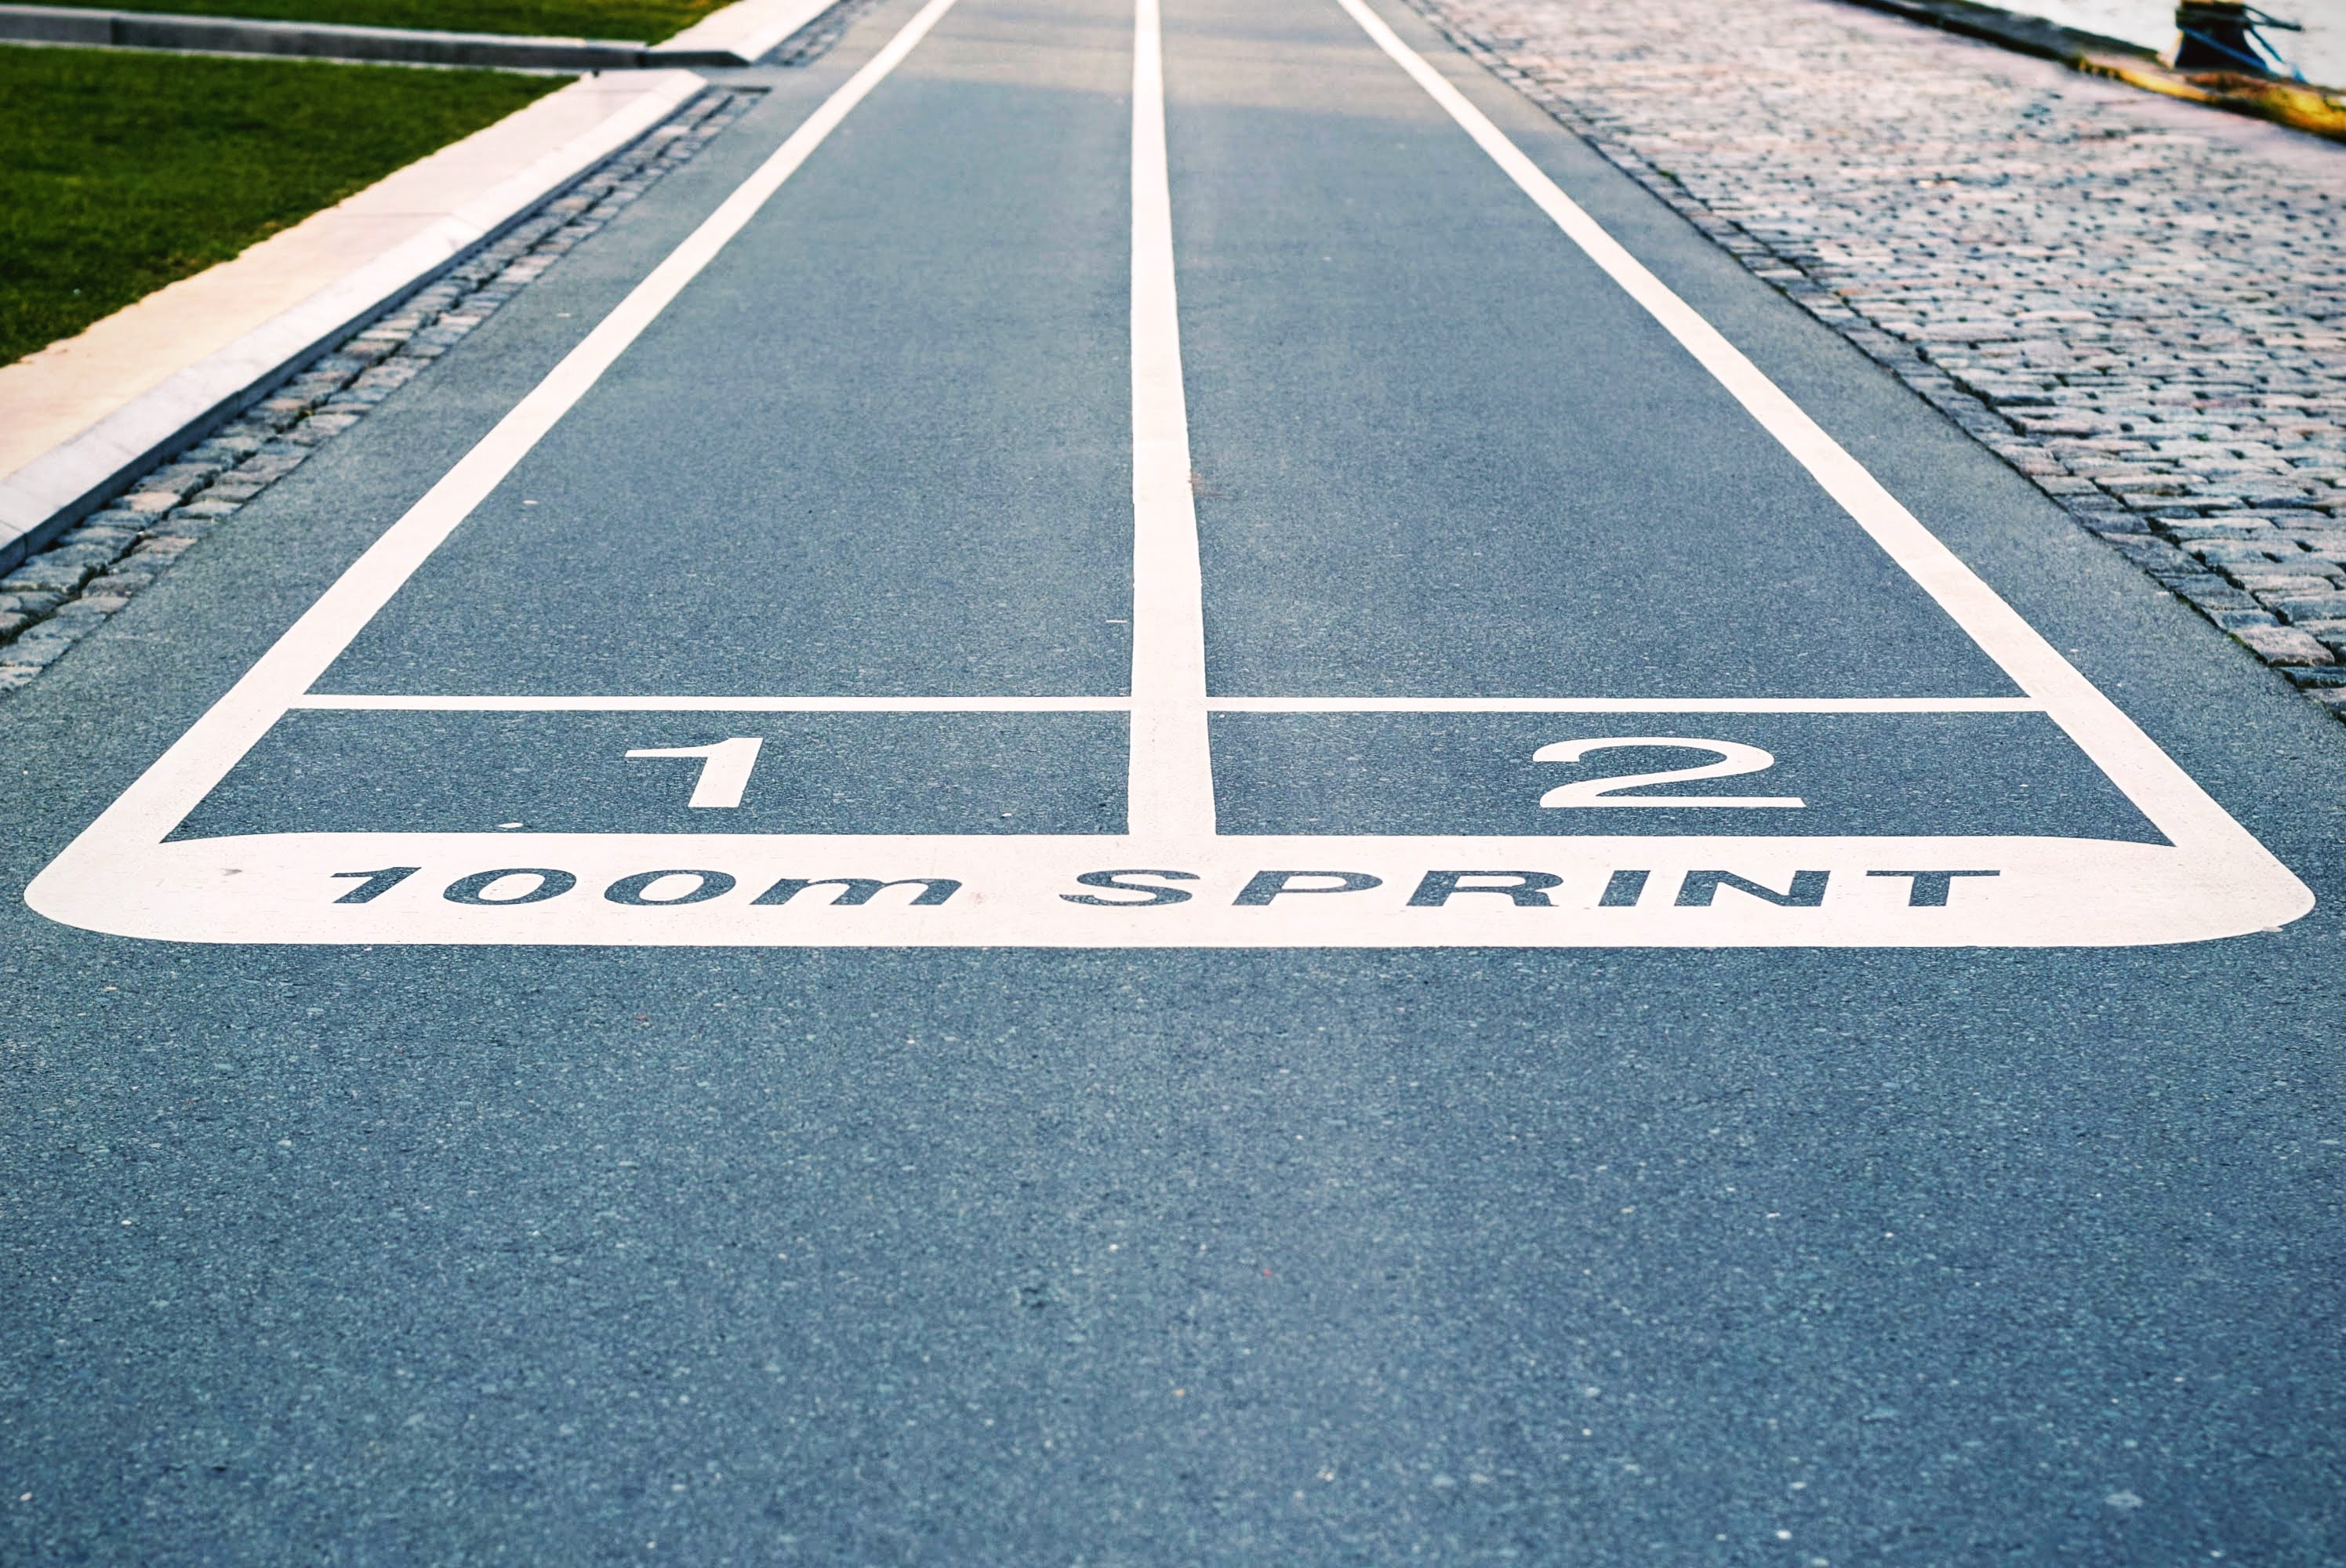 Two running lanes set up for sprinters to compete in a 100 meter race